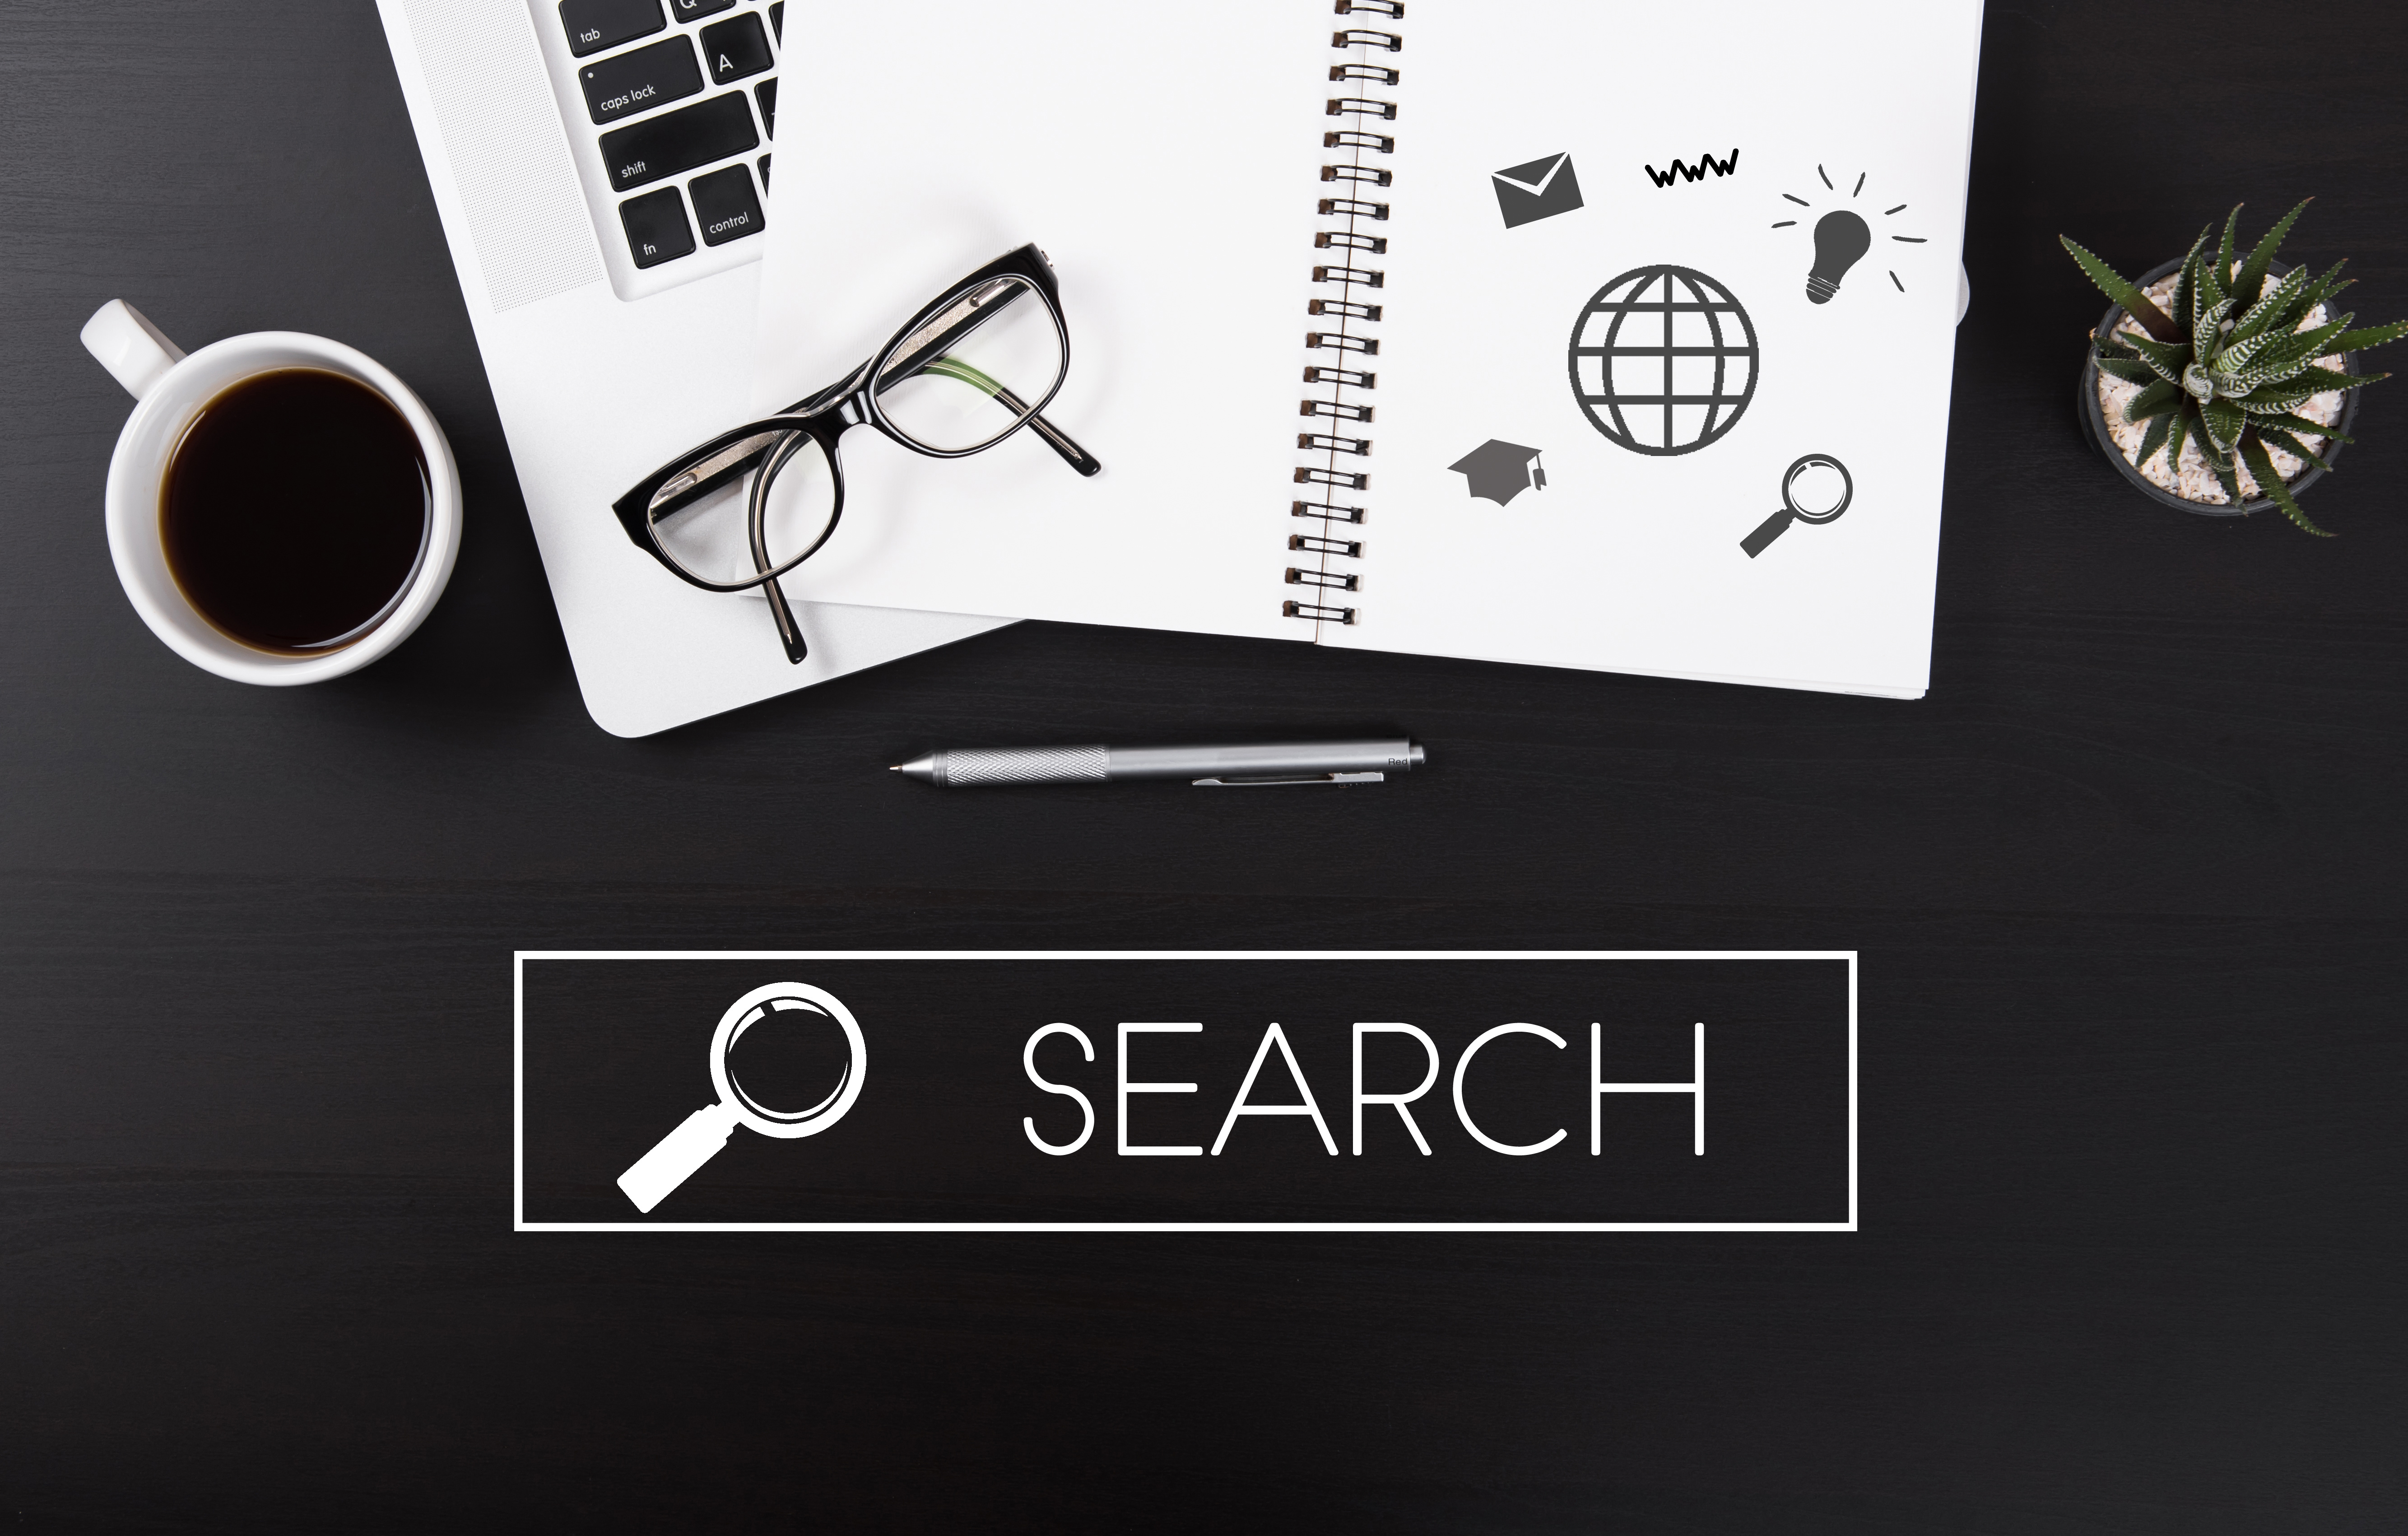 Search Engines Optimization - The RoboWP Philosophy